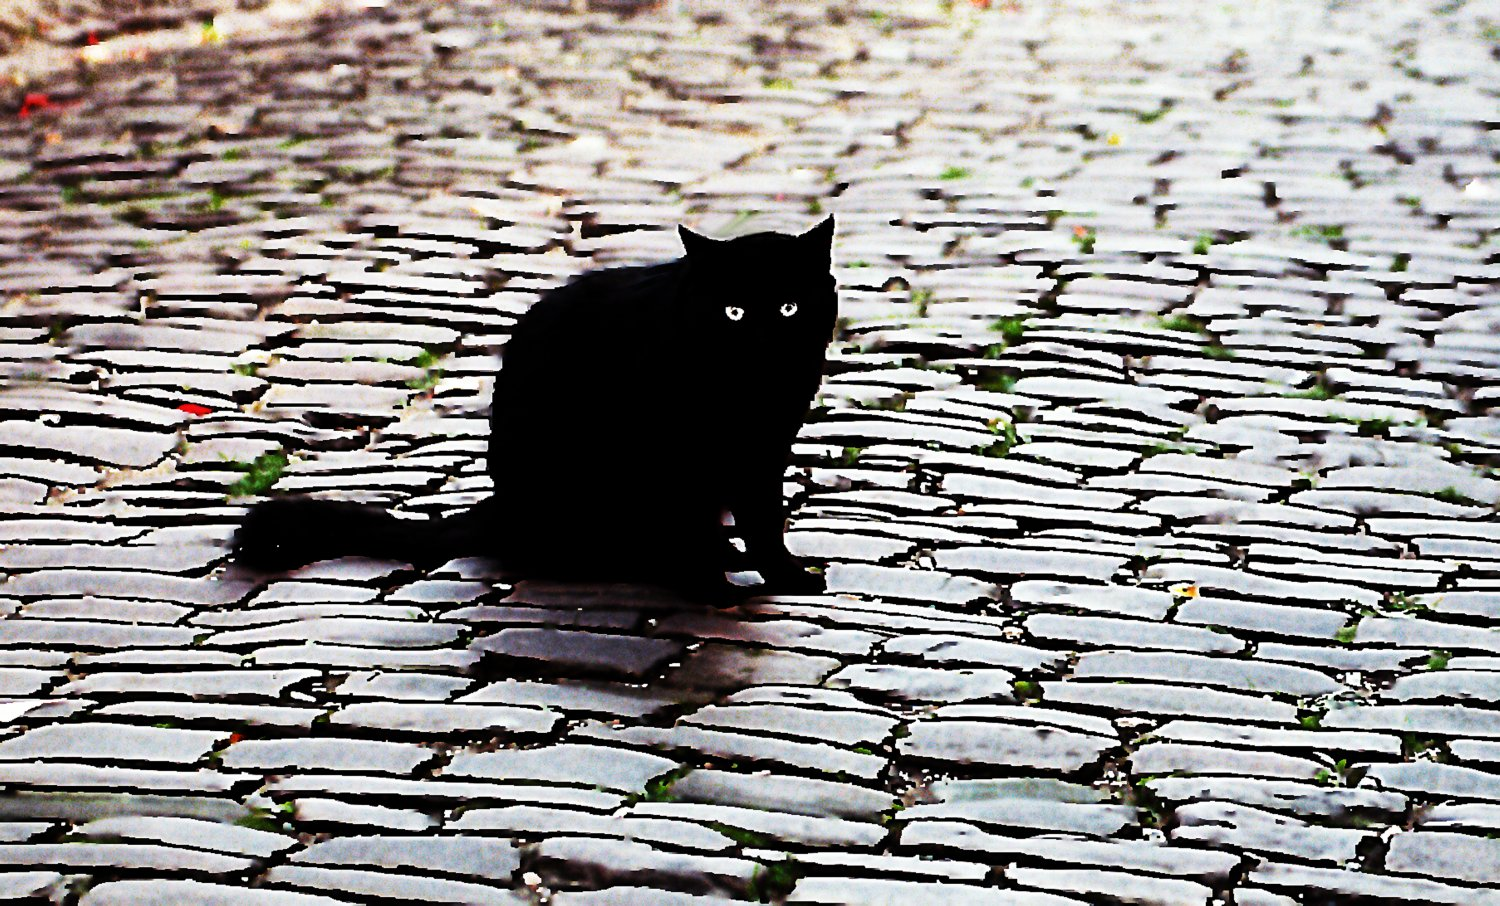 - Cordes cat - Techno-Impressionist Museum - Techno-Impressionism - art - beautiful - photo photography picture - by Tony Karp